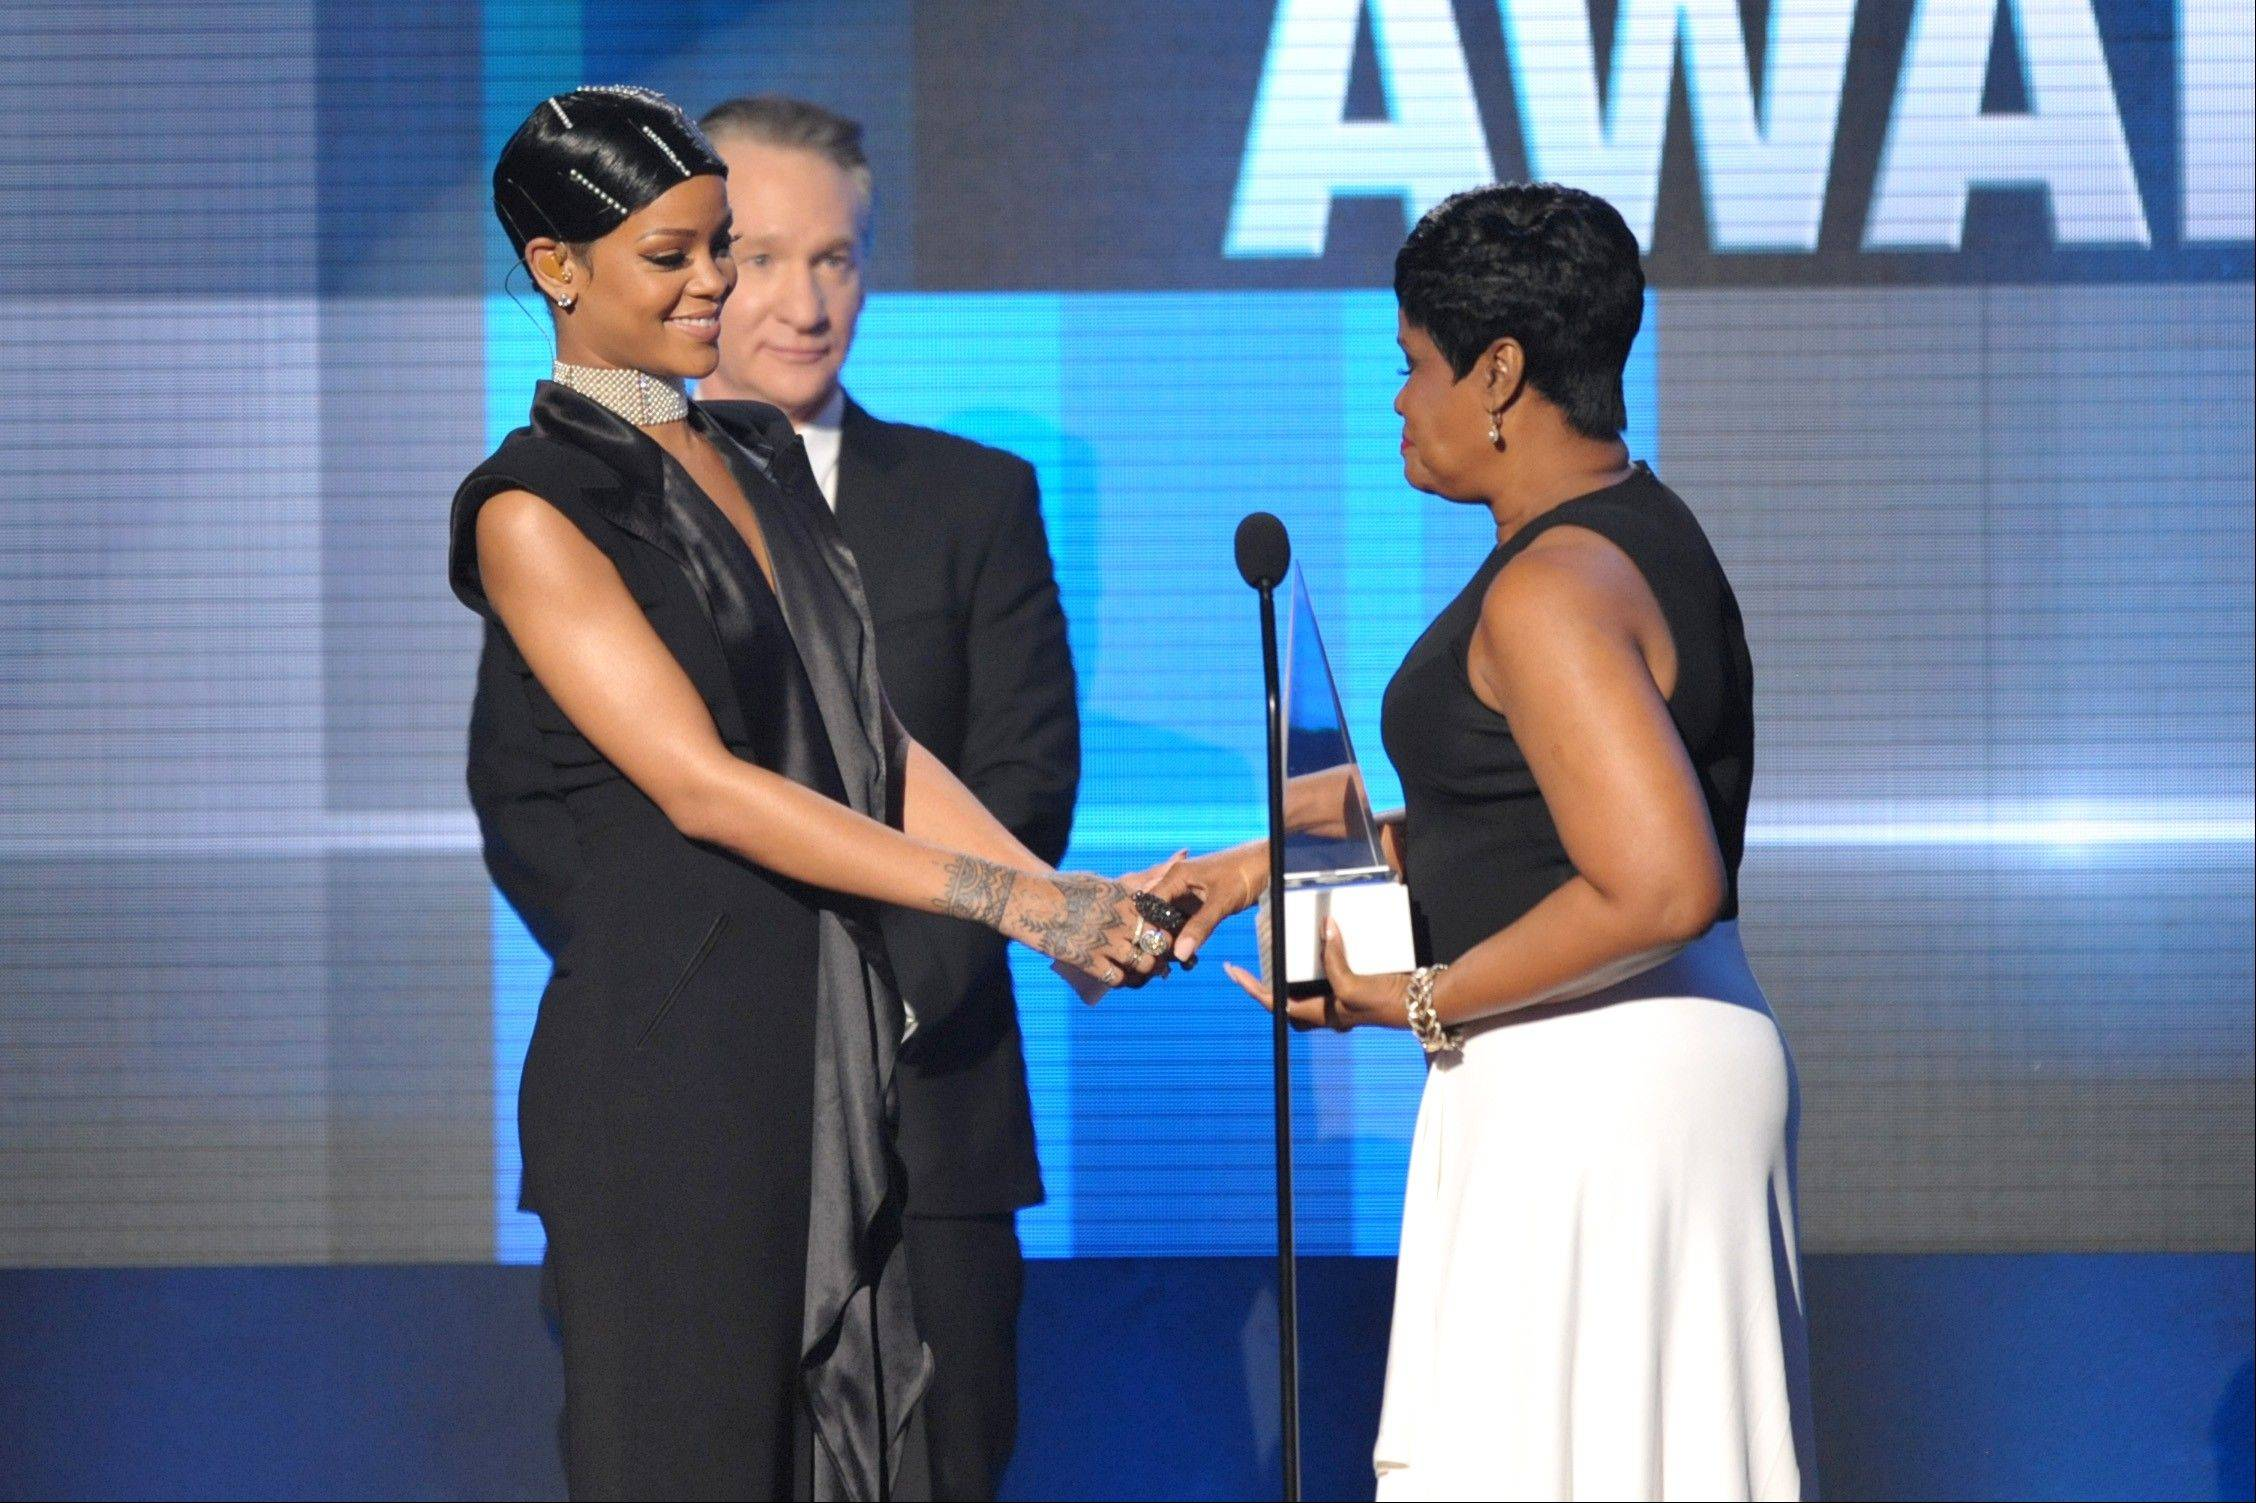 Monica Braithwaite, right, presents the Icon award to her daughter Rihanna on stage at the American Music Awards at the Nokia Theatre L.A. Live on Sunday, Nov. 24, 2013, in Los Angeles. (Photo by John Shearer/Invision/AP)